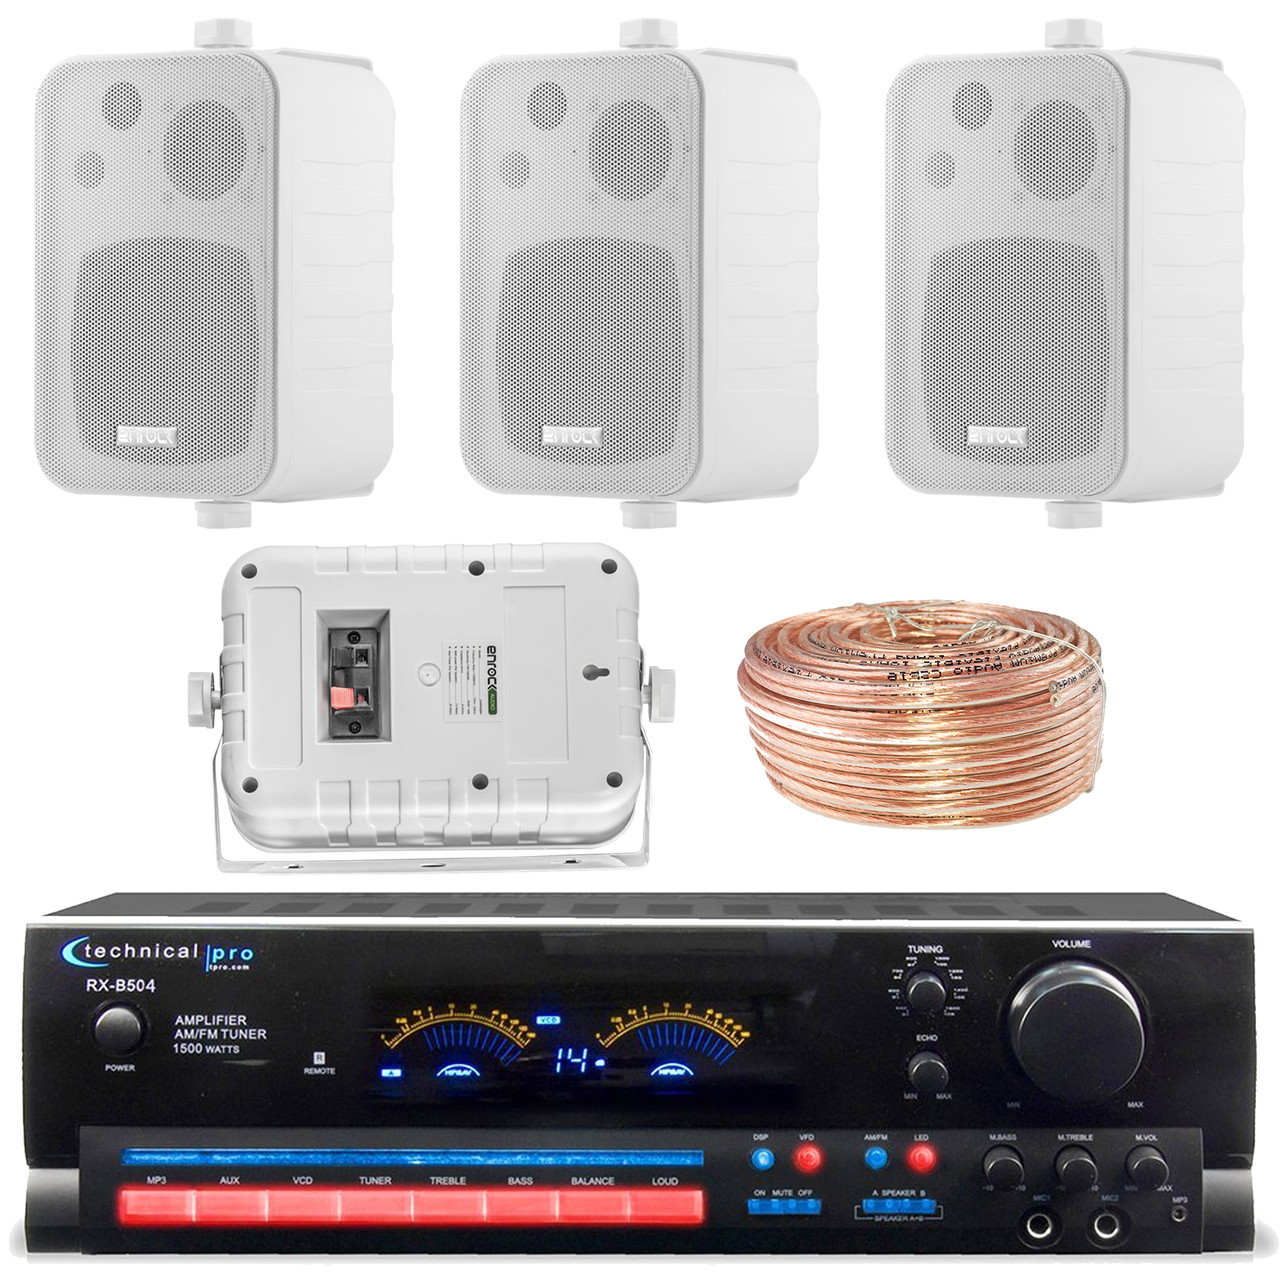 Technical Pro RX504 1500-Watt - 2-Channel - Integrated Amplifier & Pre-Amp  Stereo Receiver Amp Bundle Combo With 4x Enrock EKMR408W 4